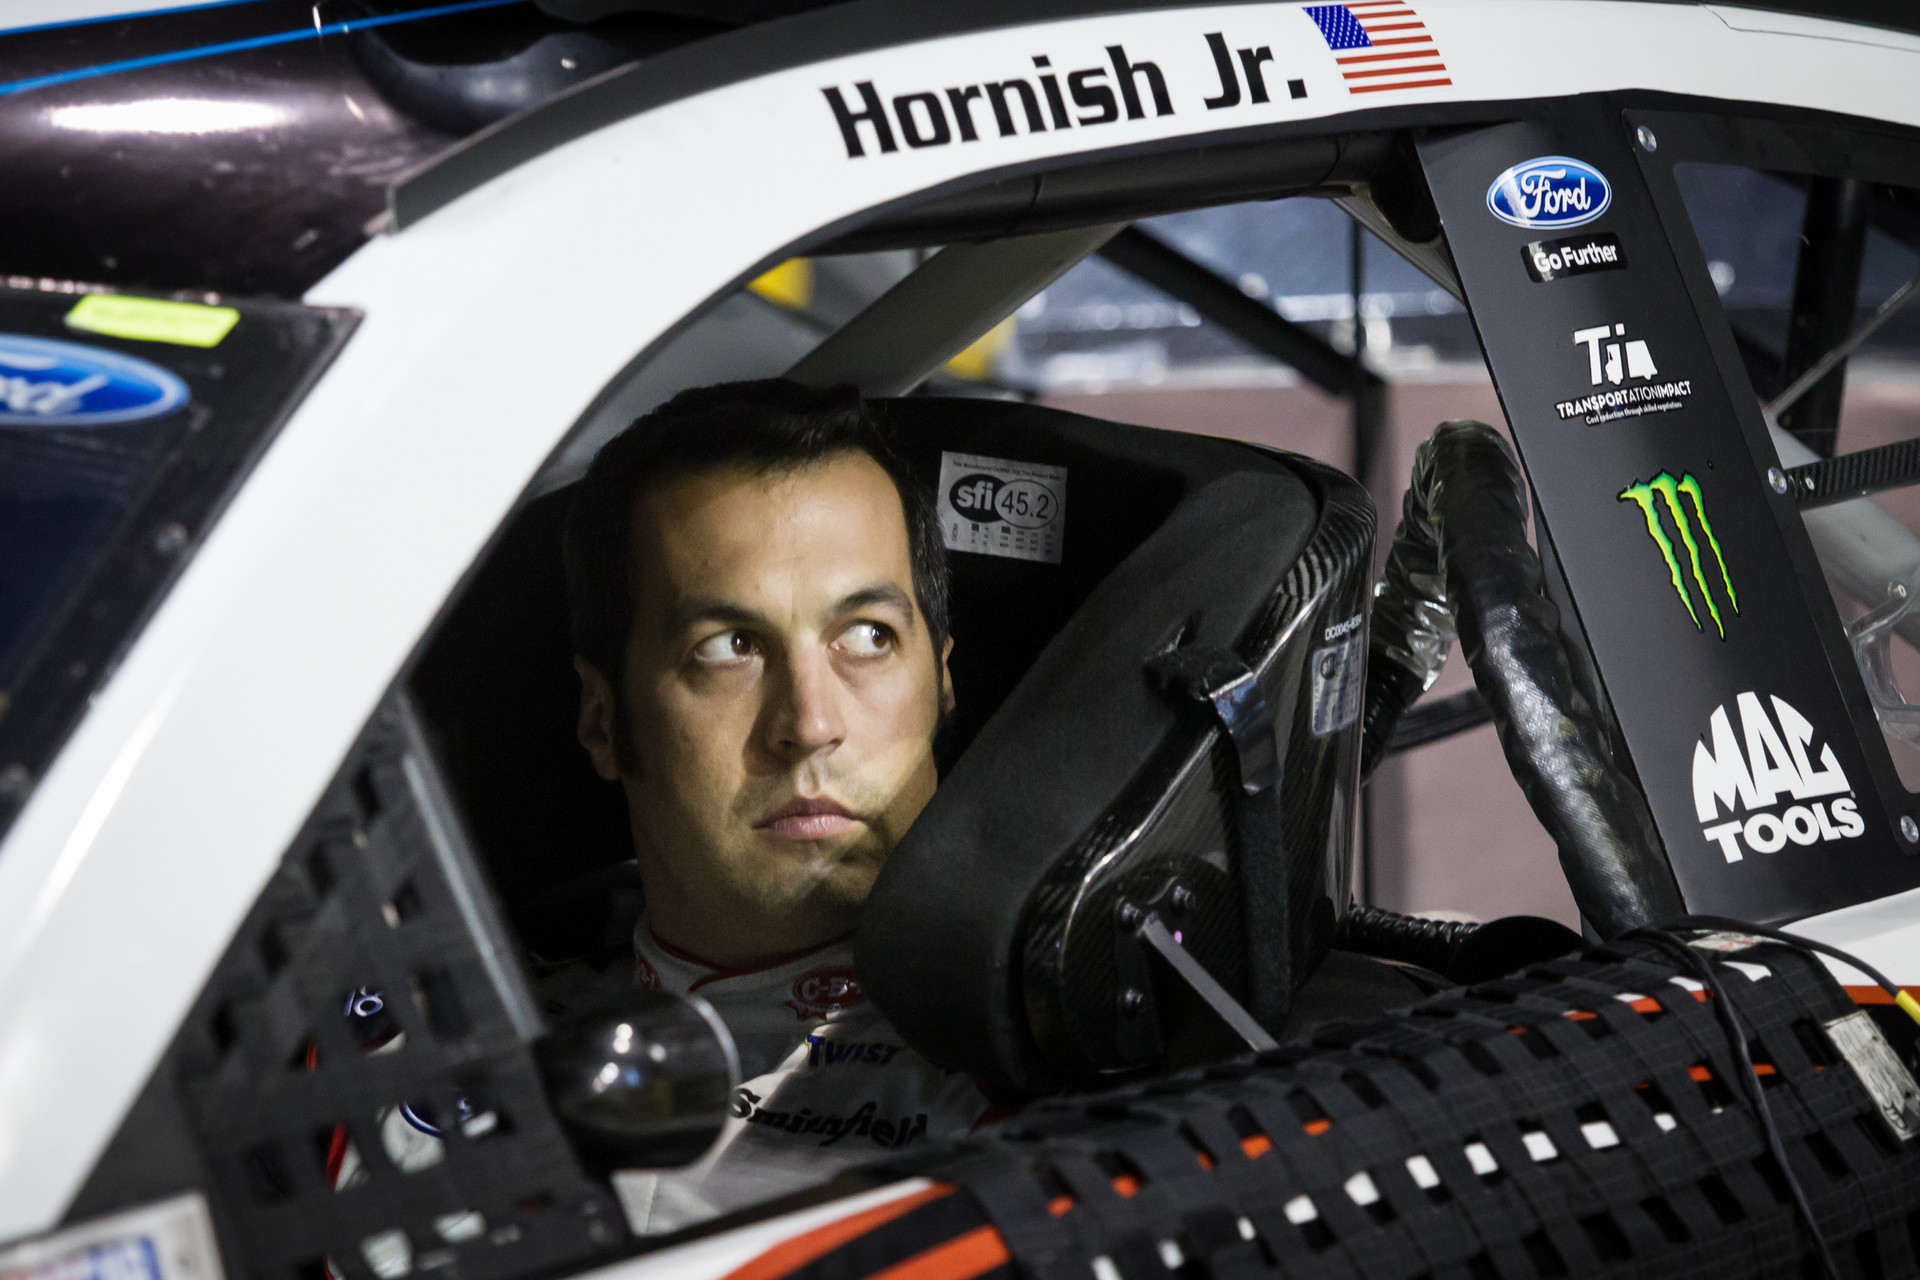 Kevin gates sam hornish jr6802